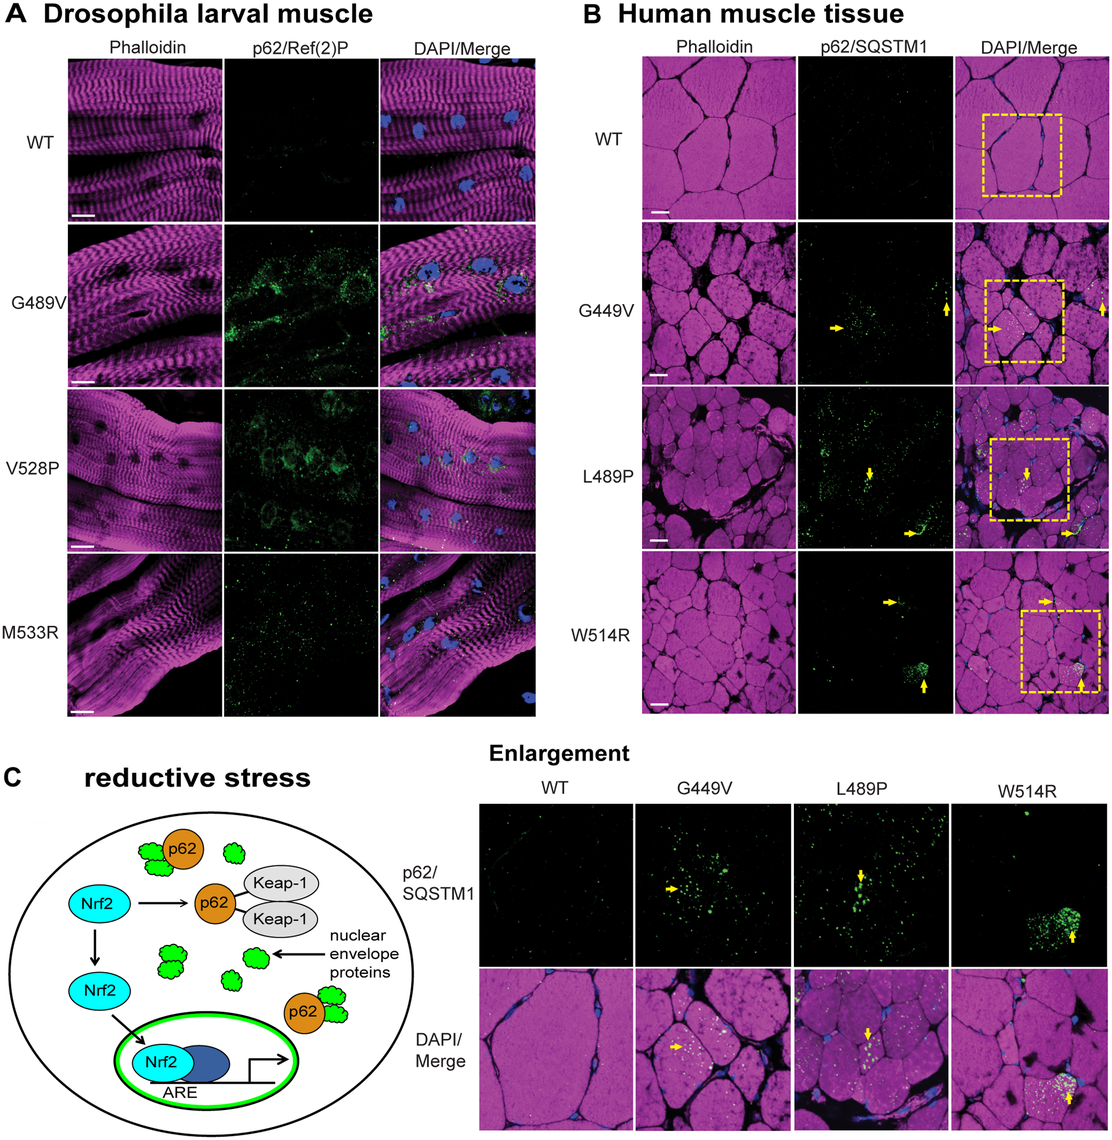 Mutant lamins cause increased levels of p62/SQSTM1 in Drosophila muscles and human muscle biopsy tissues.